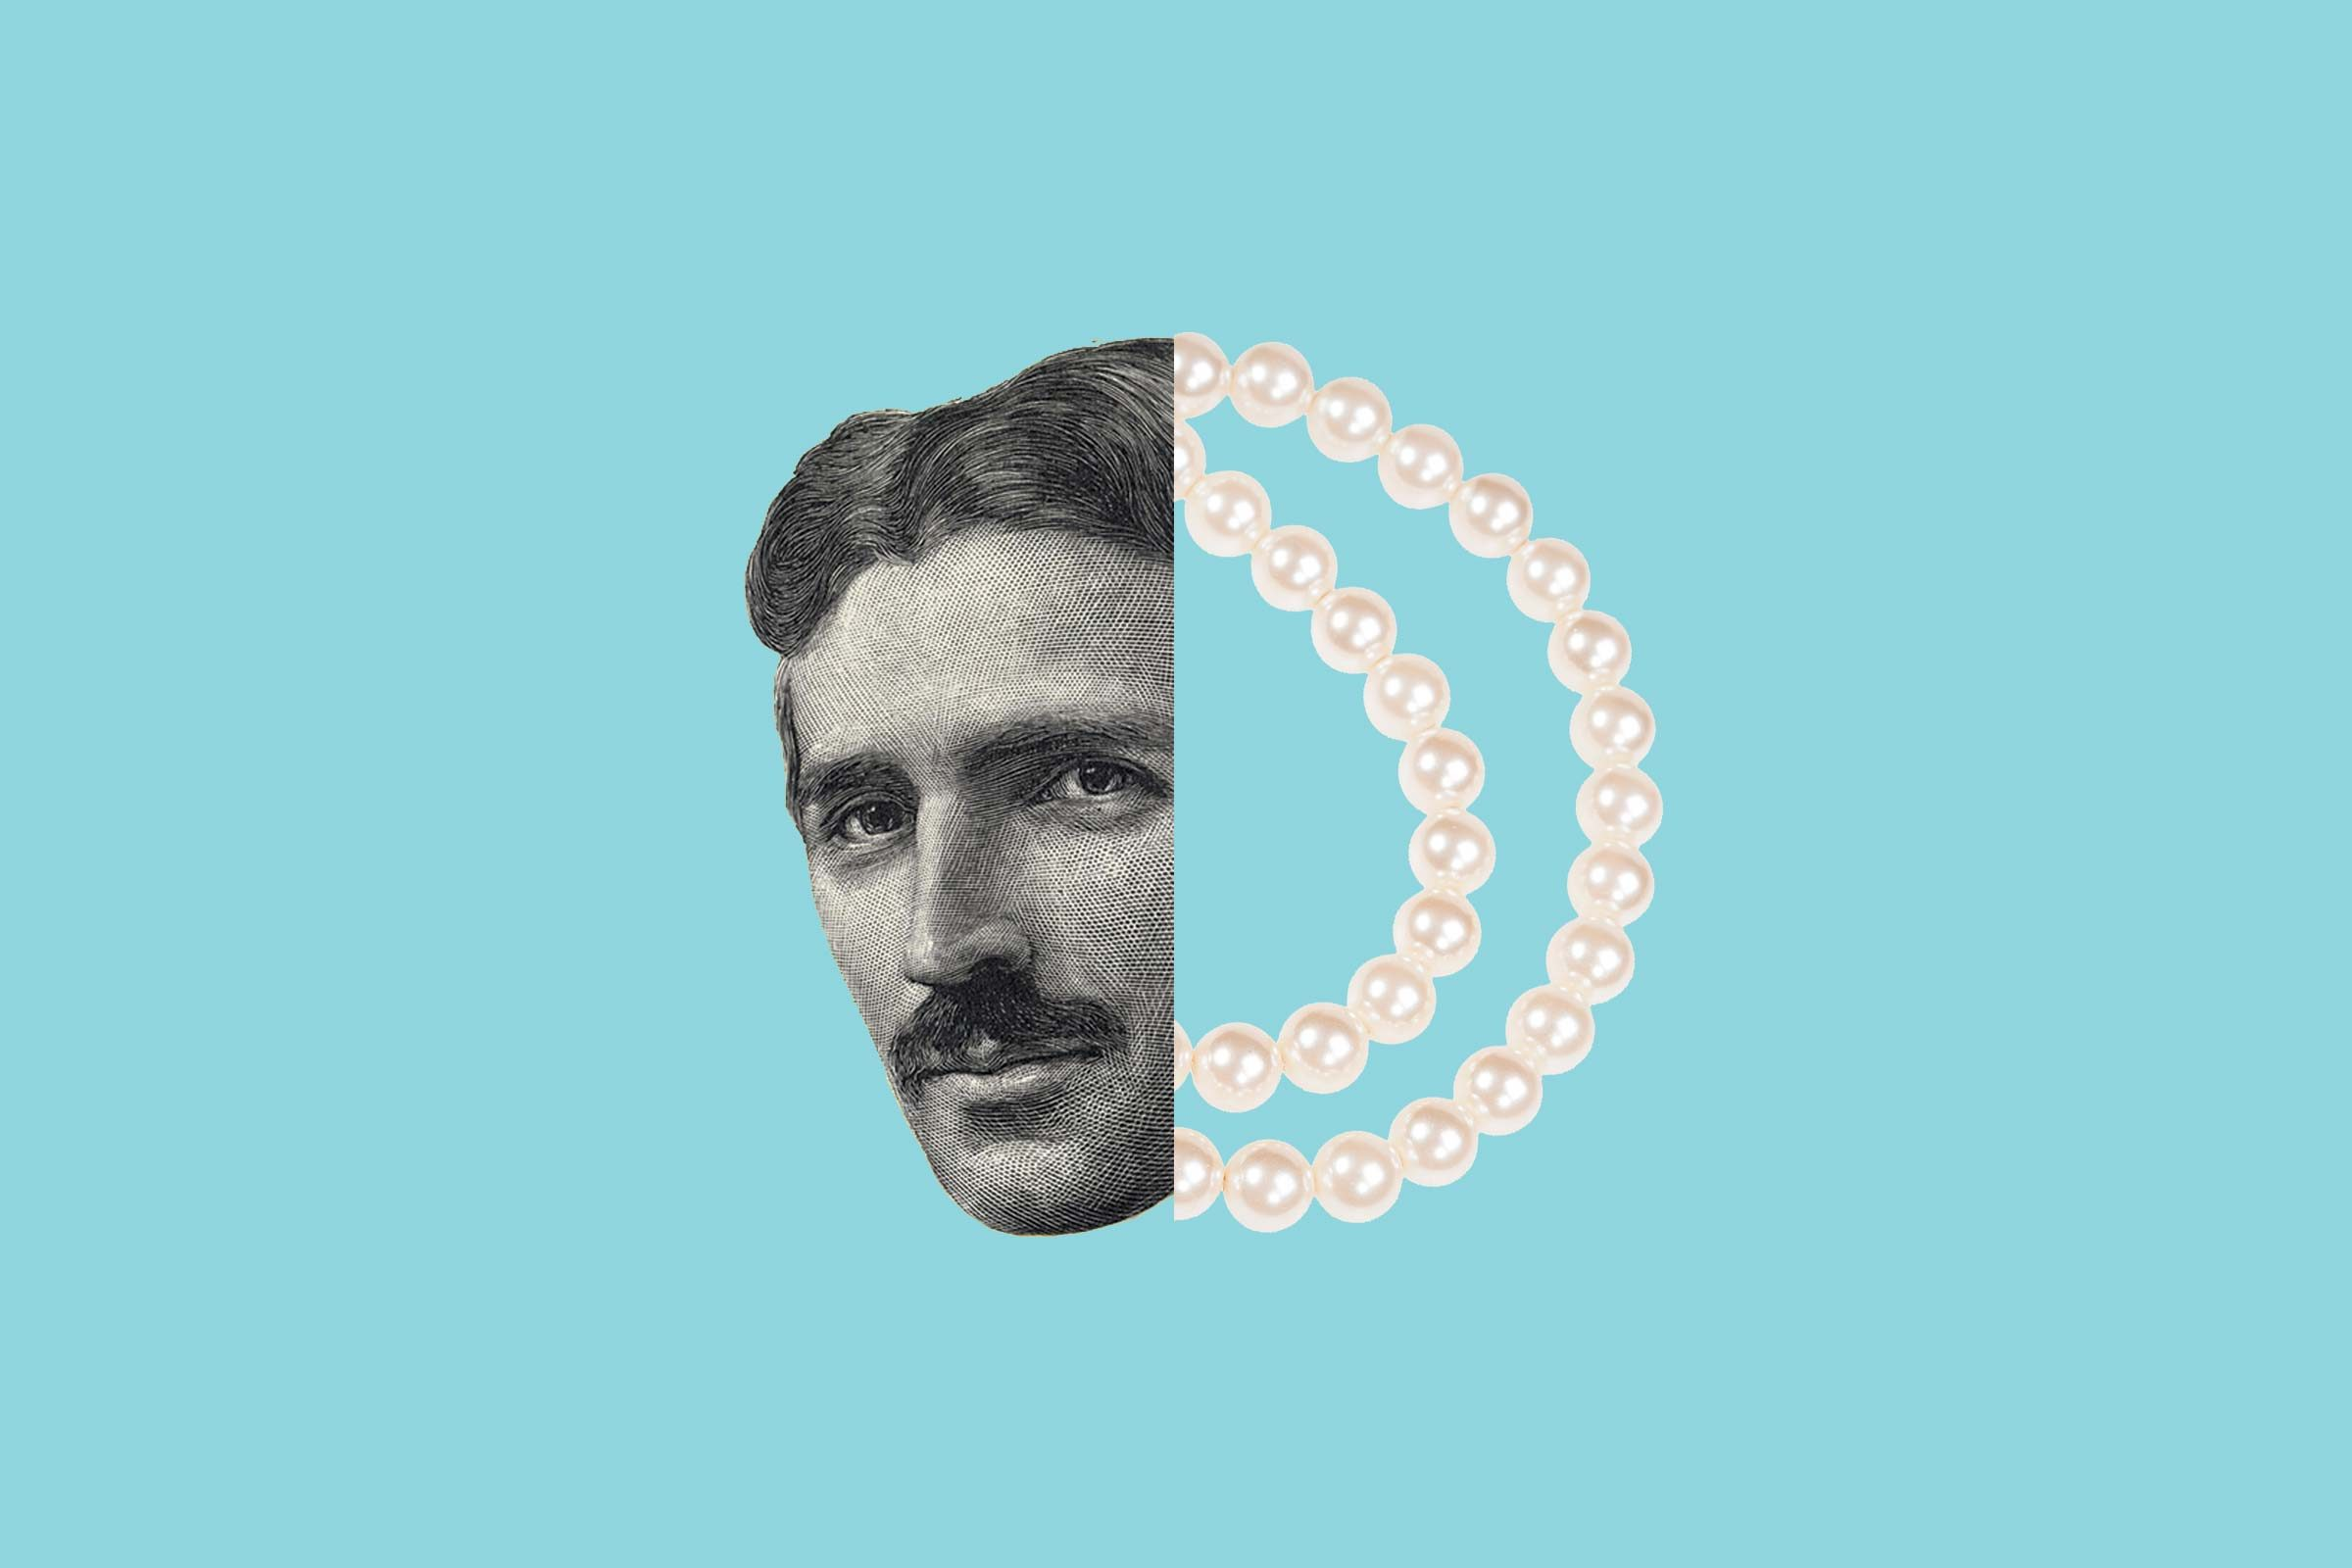 Nikola Tesla hated pearls